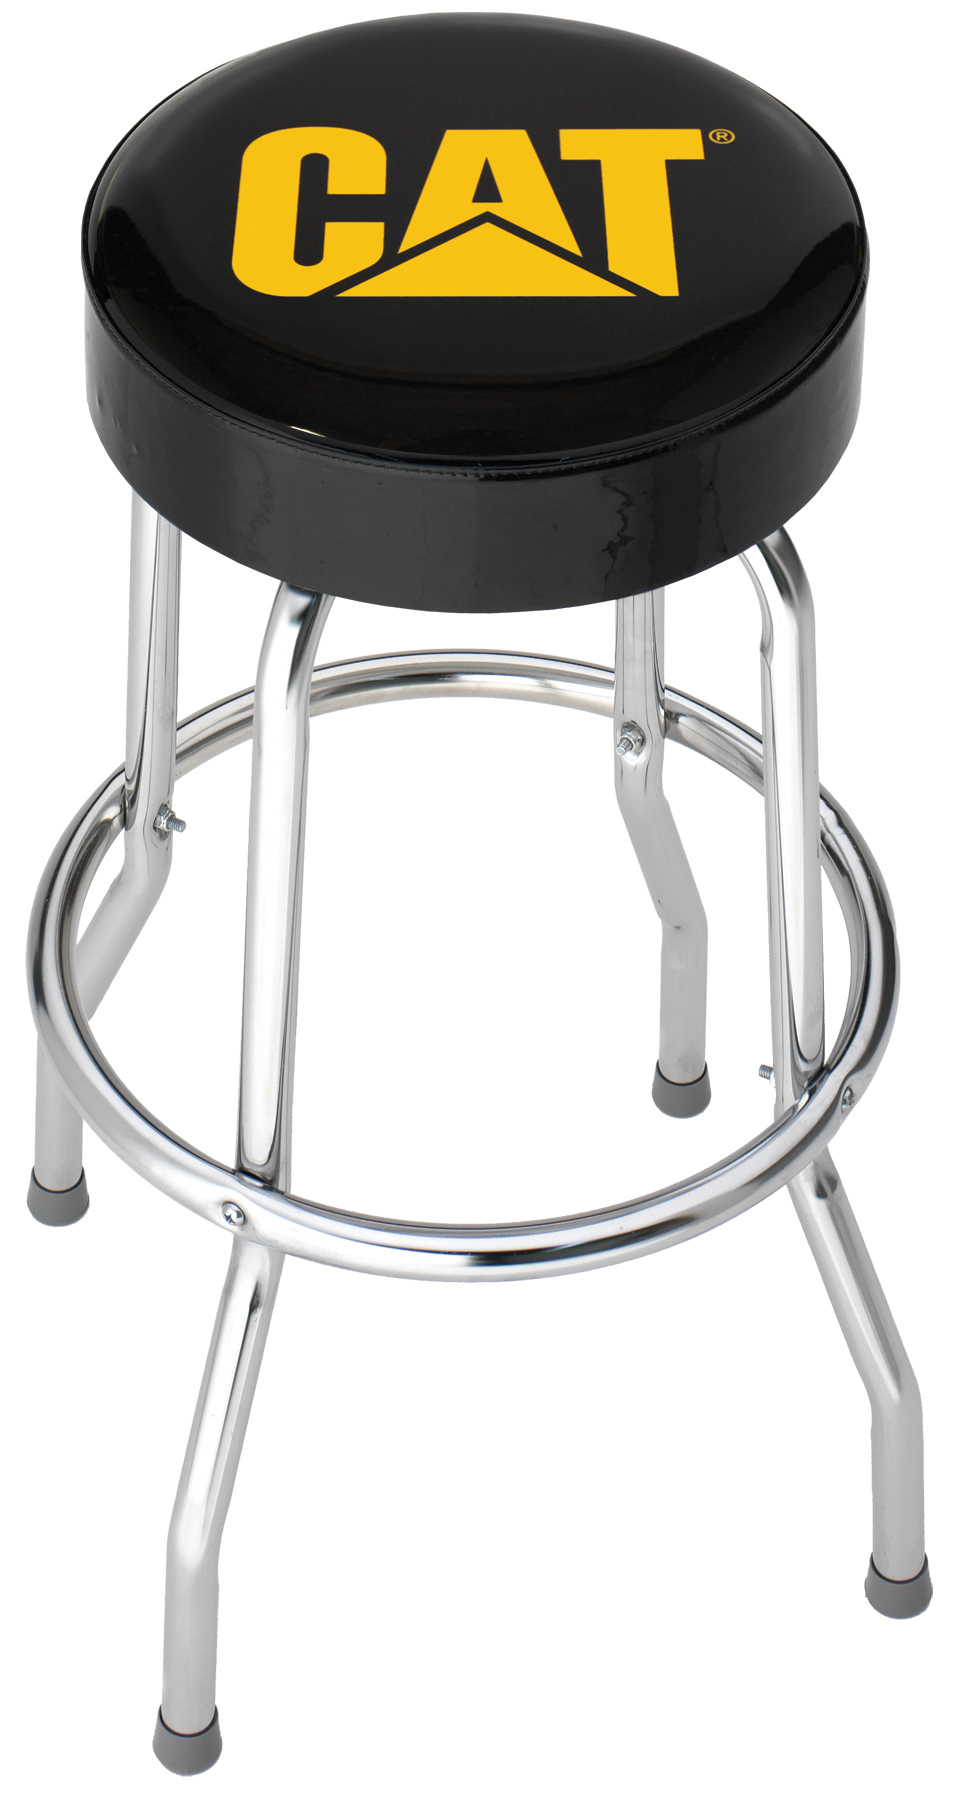 Caterpillar CAT Chrome Plated Garage Shop Bar Stool  : catstool from www.globaltrucker.com size 977 x 1800 jpeg 502kB